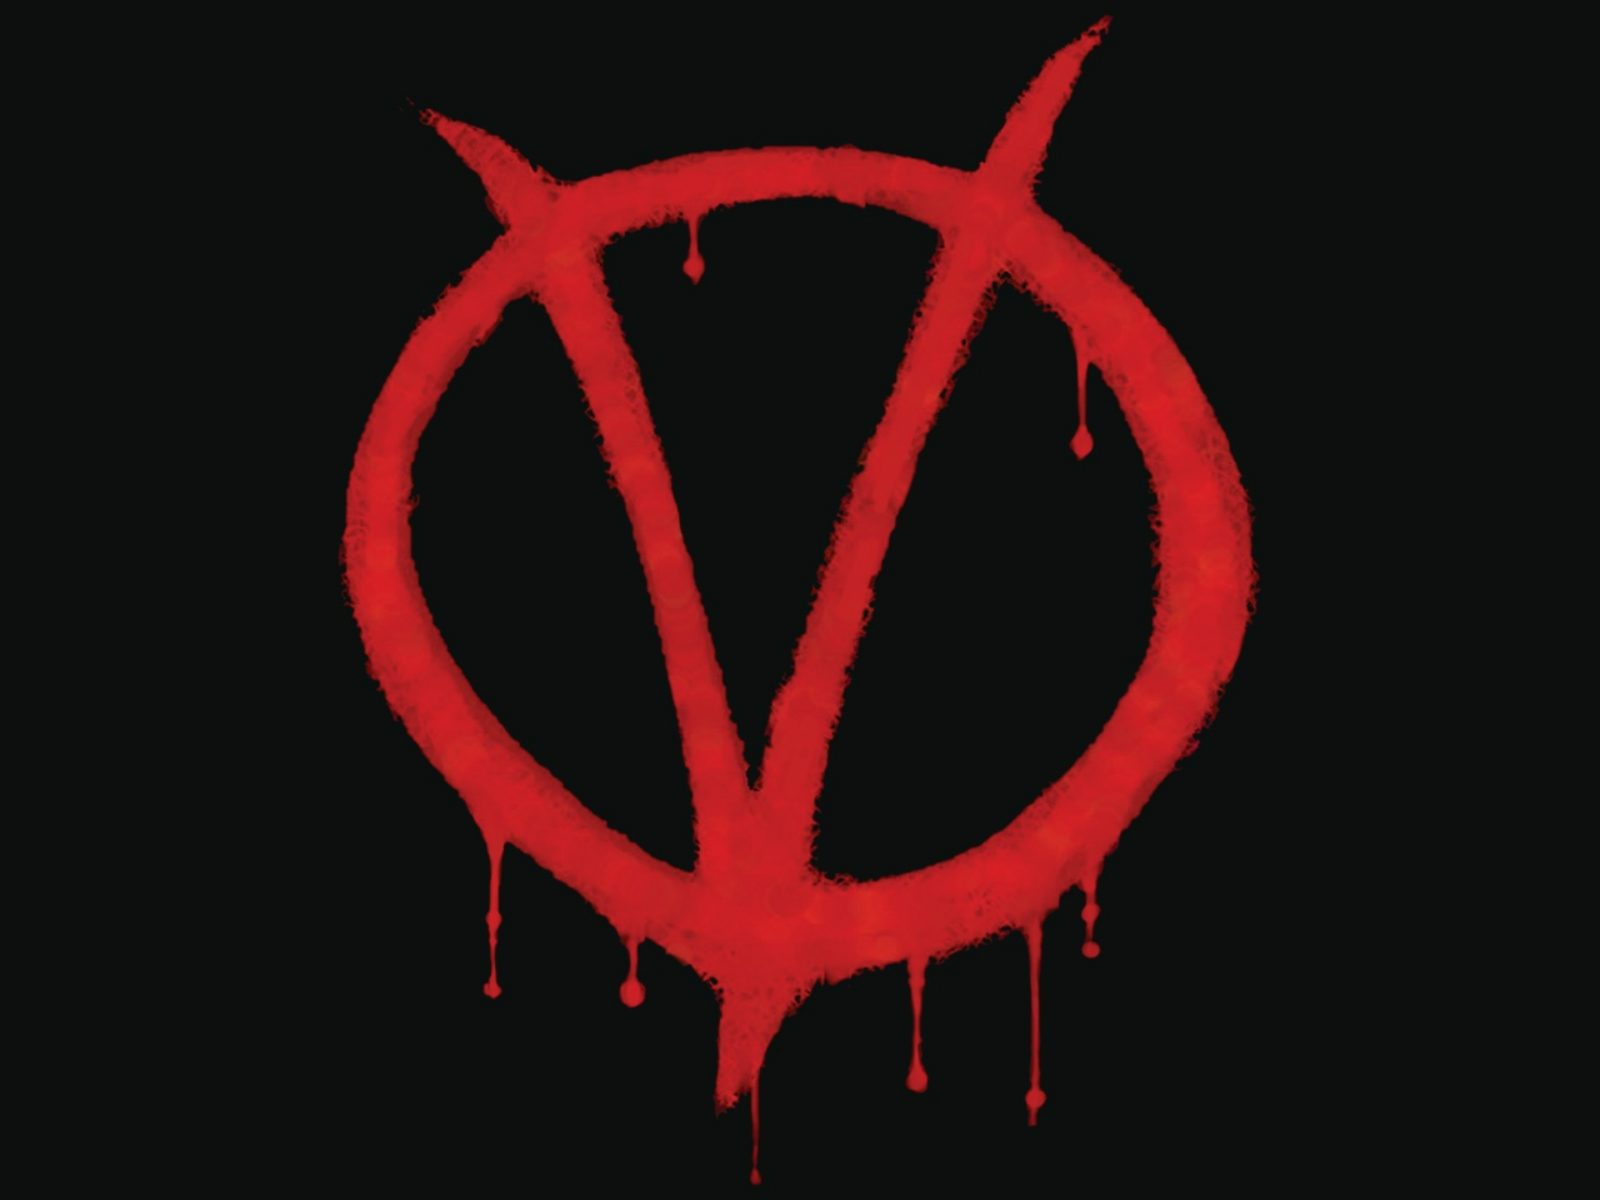 V For Vendetta Logos Amp Guy Fawkes Mask HD Wallpapers HD